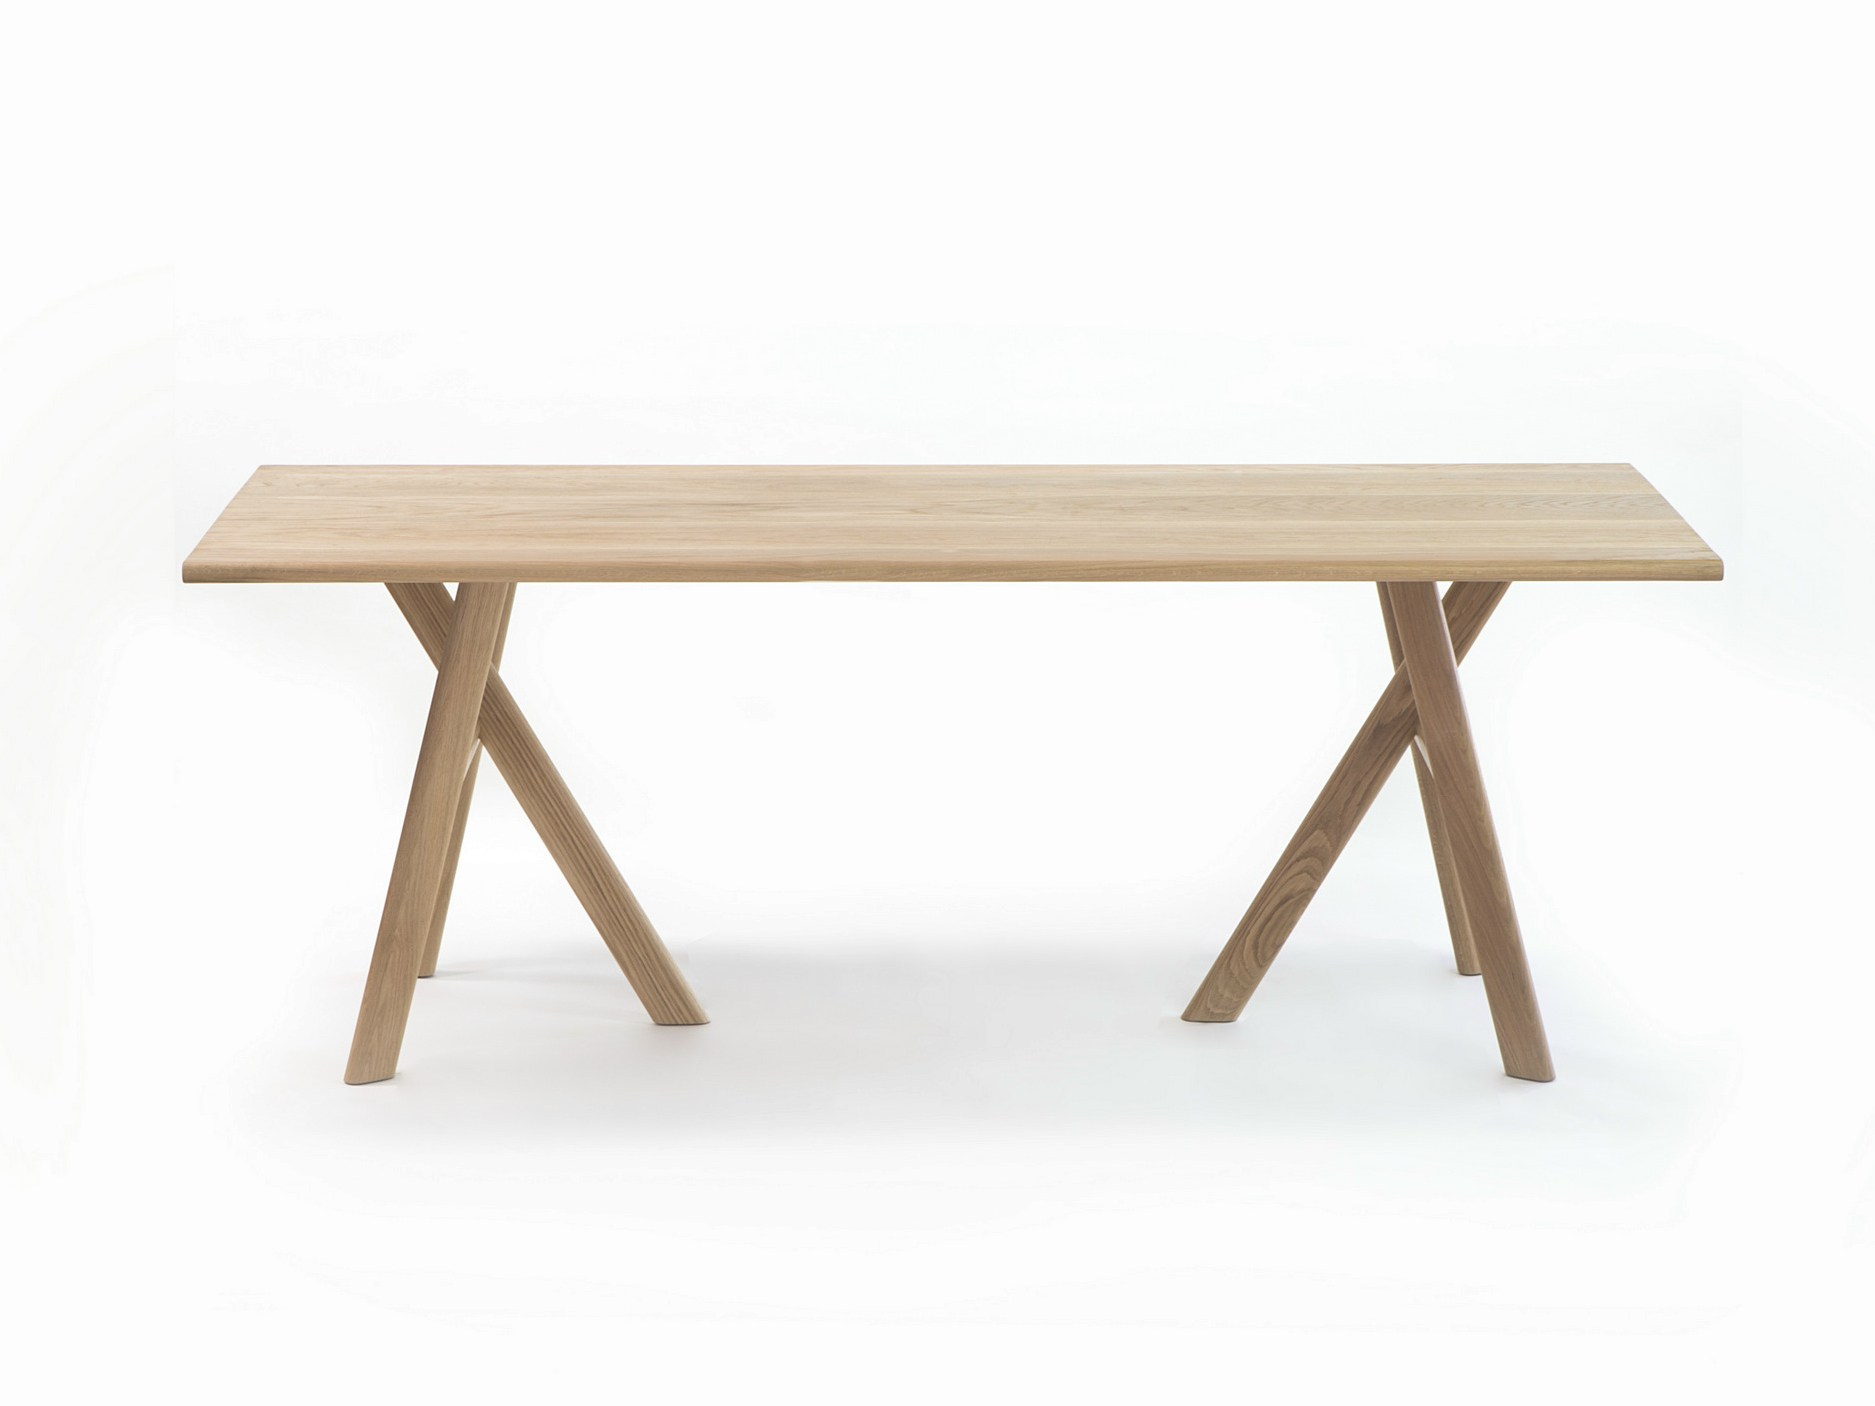 Rectangular Solid Wood Table M Lunch Table By Specimen Editions Design Thinkk Studio Decha